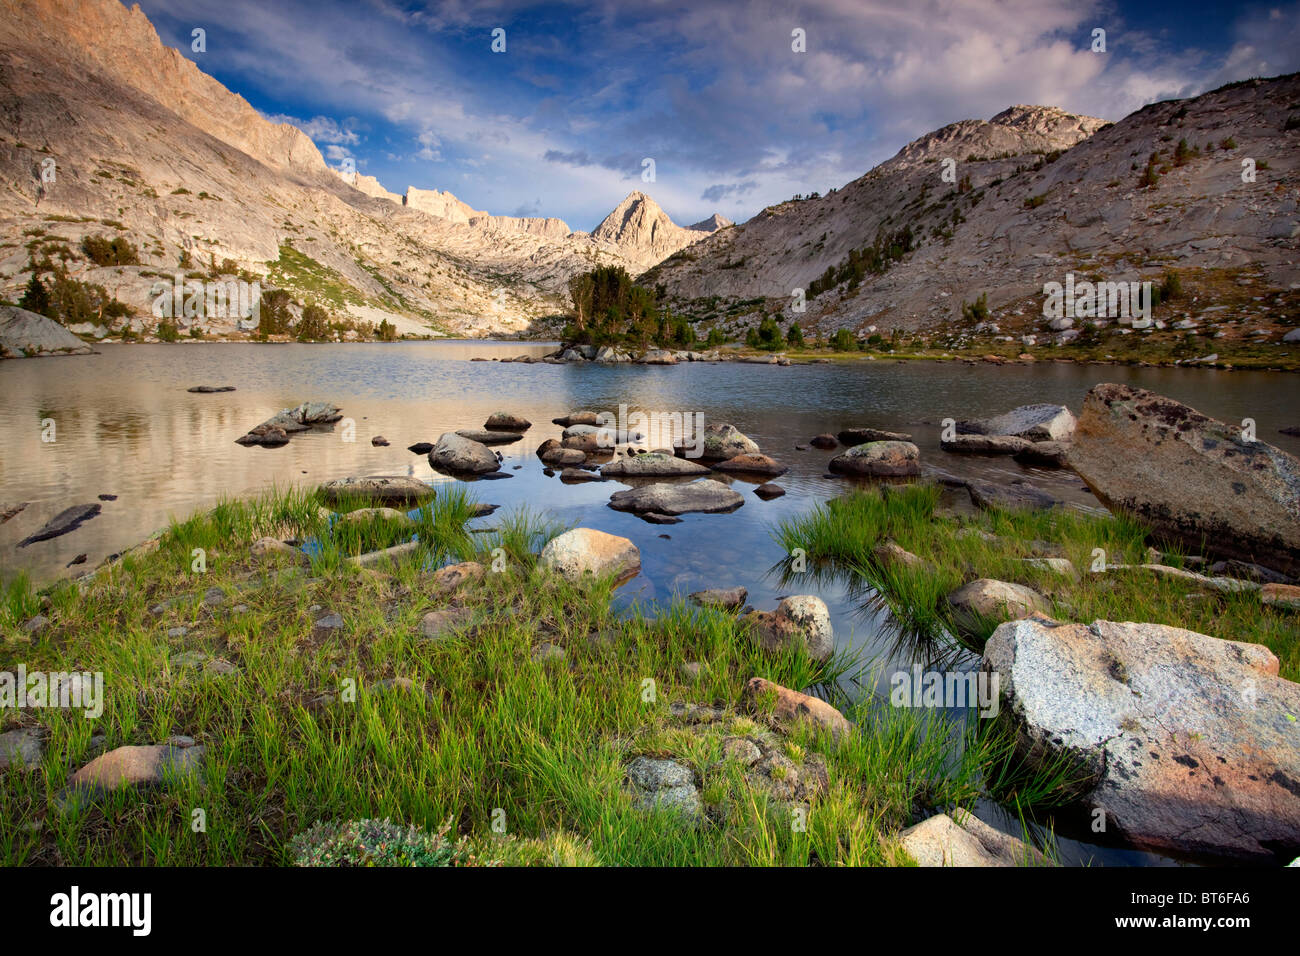 Clouds over Evolution Lake, John Muir Wilderness, Sequoia Kings Canyon National Park, California - Stock Image